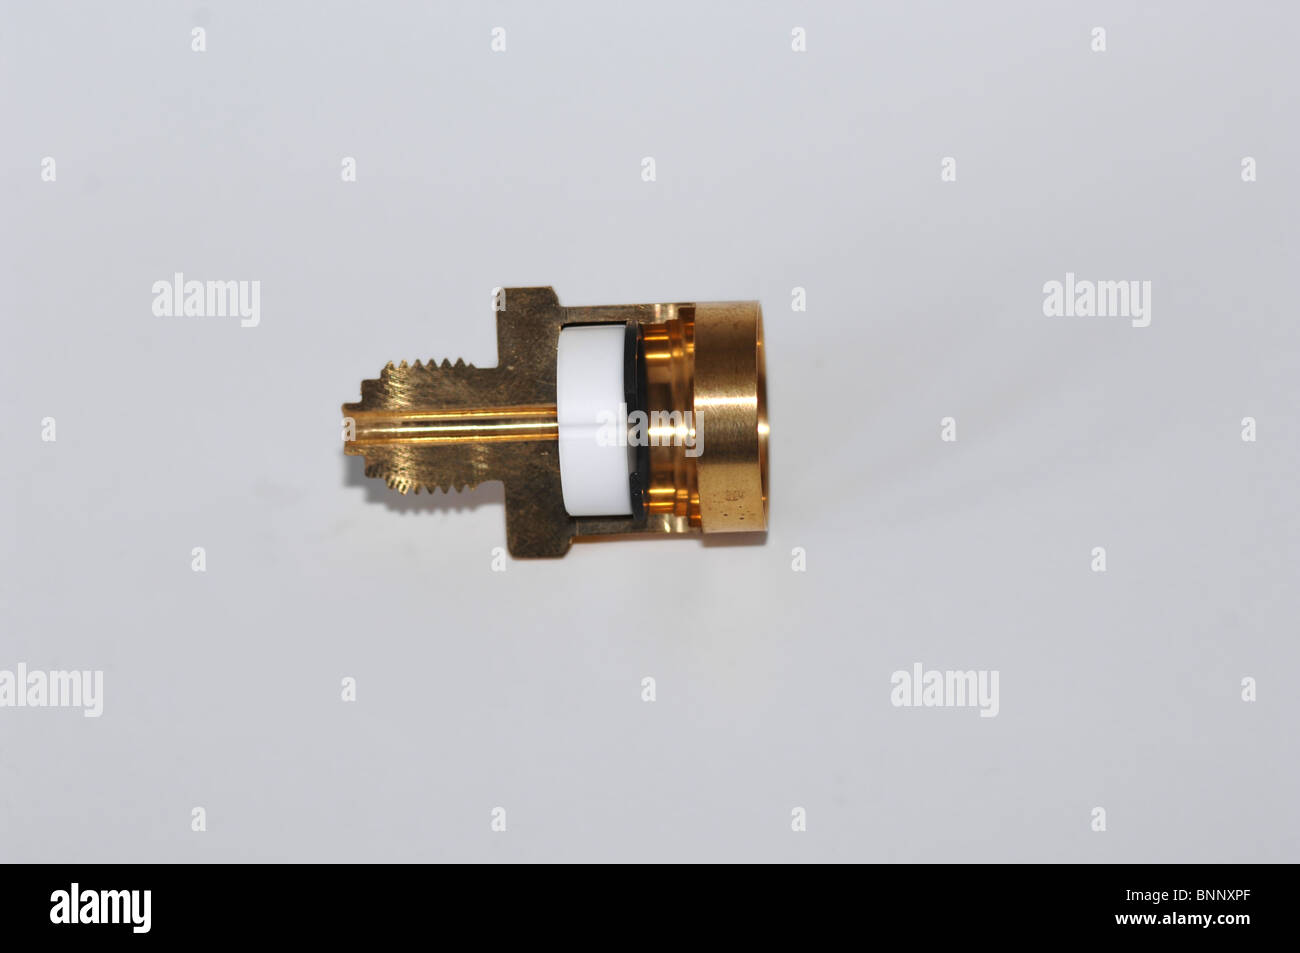 Electronic Pressure Transducer with threaded mount, cut away view showing ceramic transducer element internal to - Stock Image